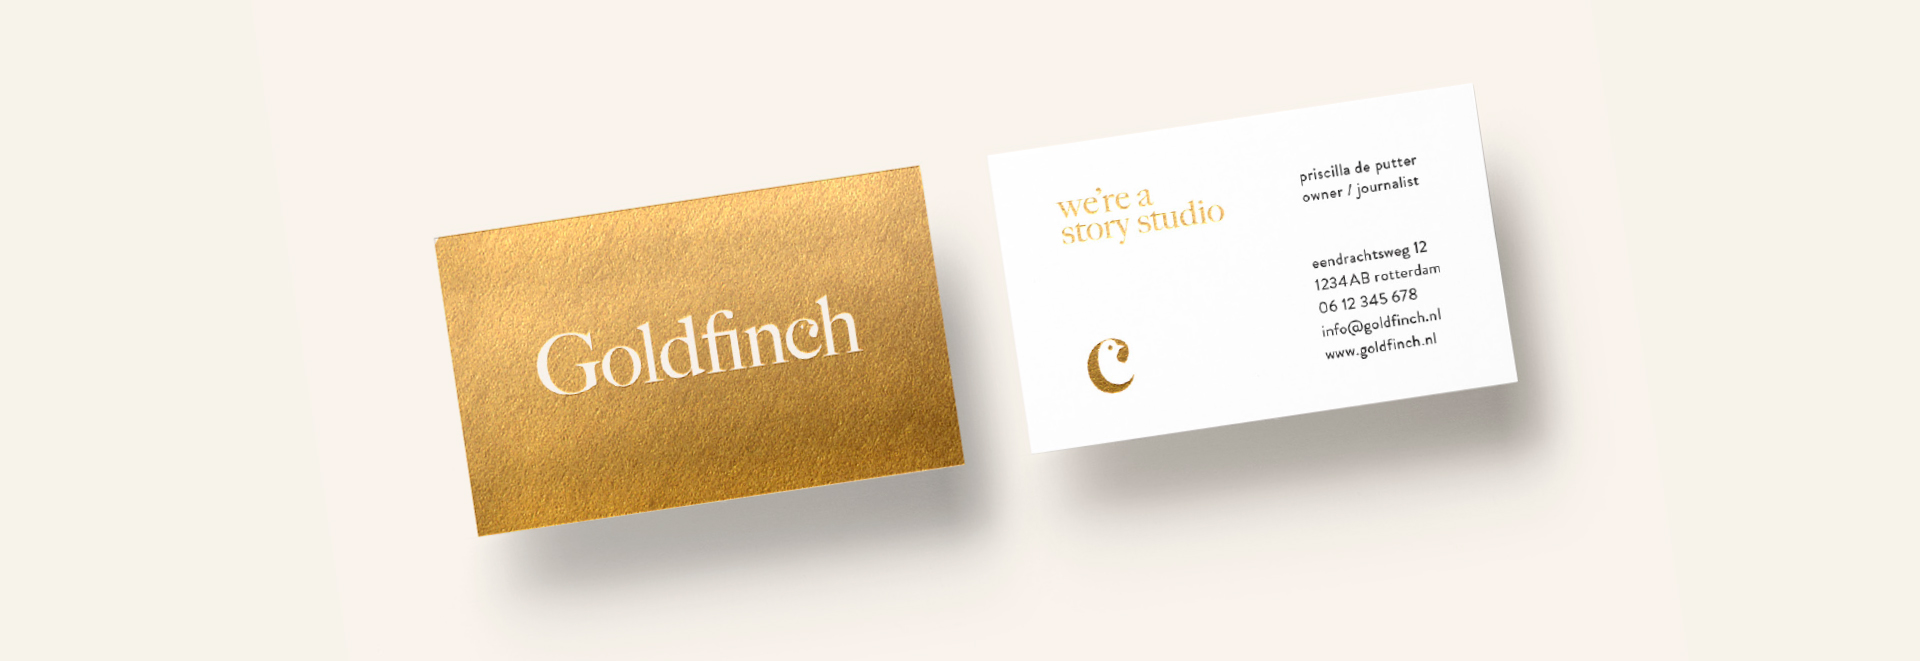 6goldfinch_studio_identity_negative_space_logo_design_leconcepteur_tamarapruis